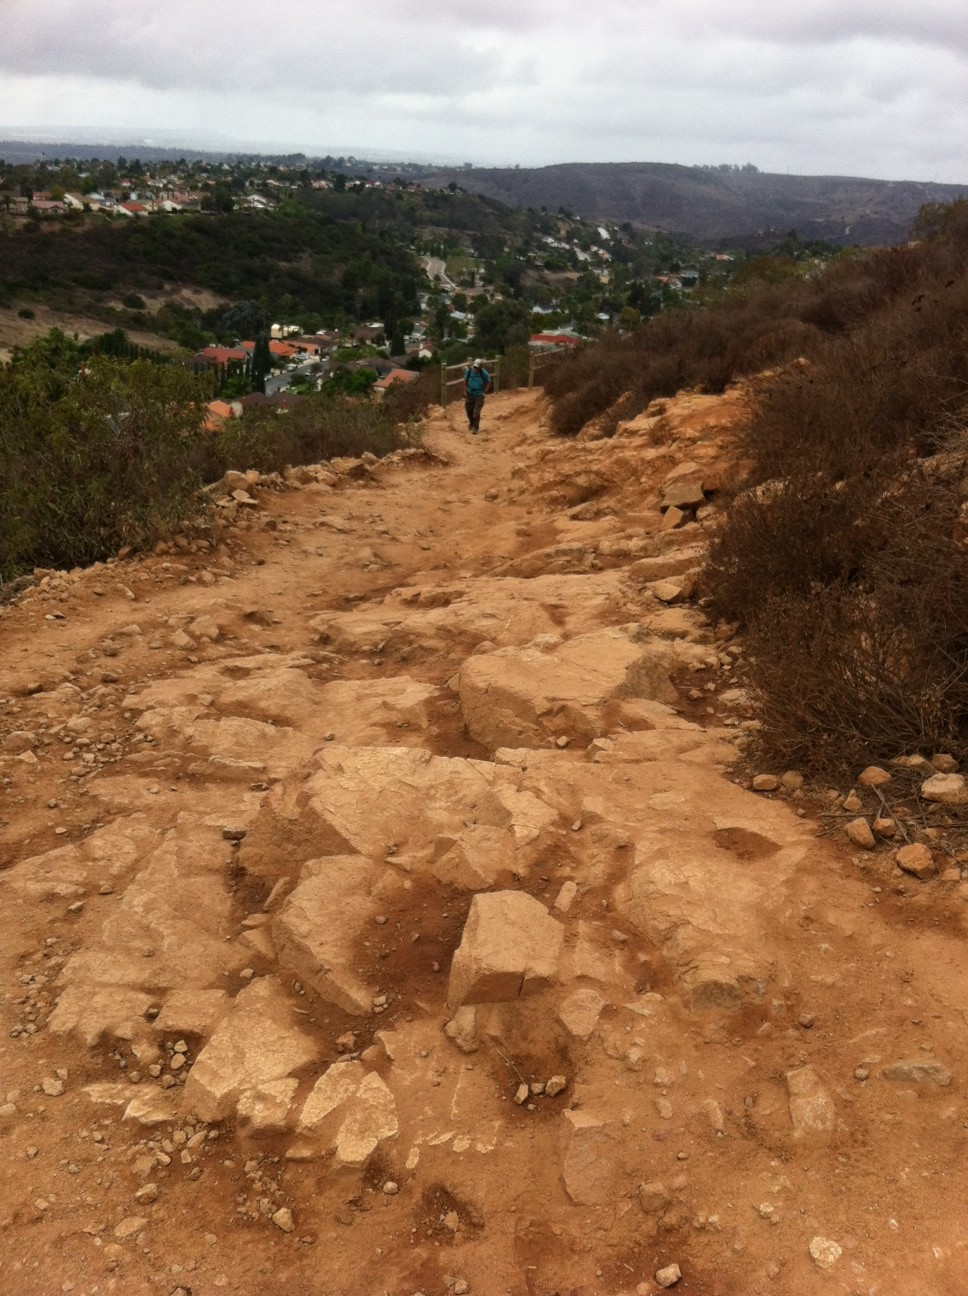 Grounded on the Trail, Grounded in Life by Mark Lees, M.A., Hiker Therapy